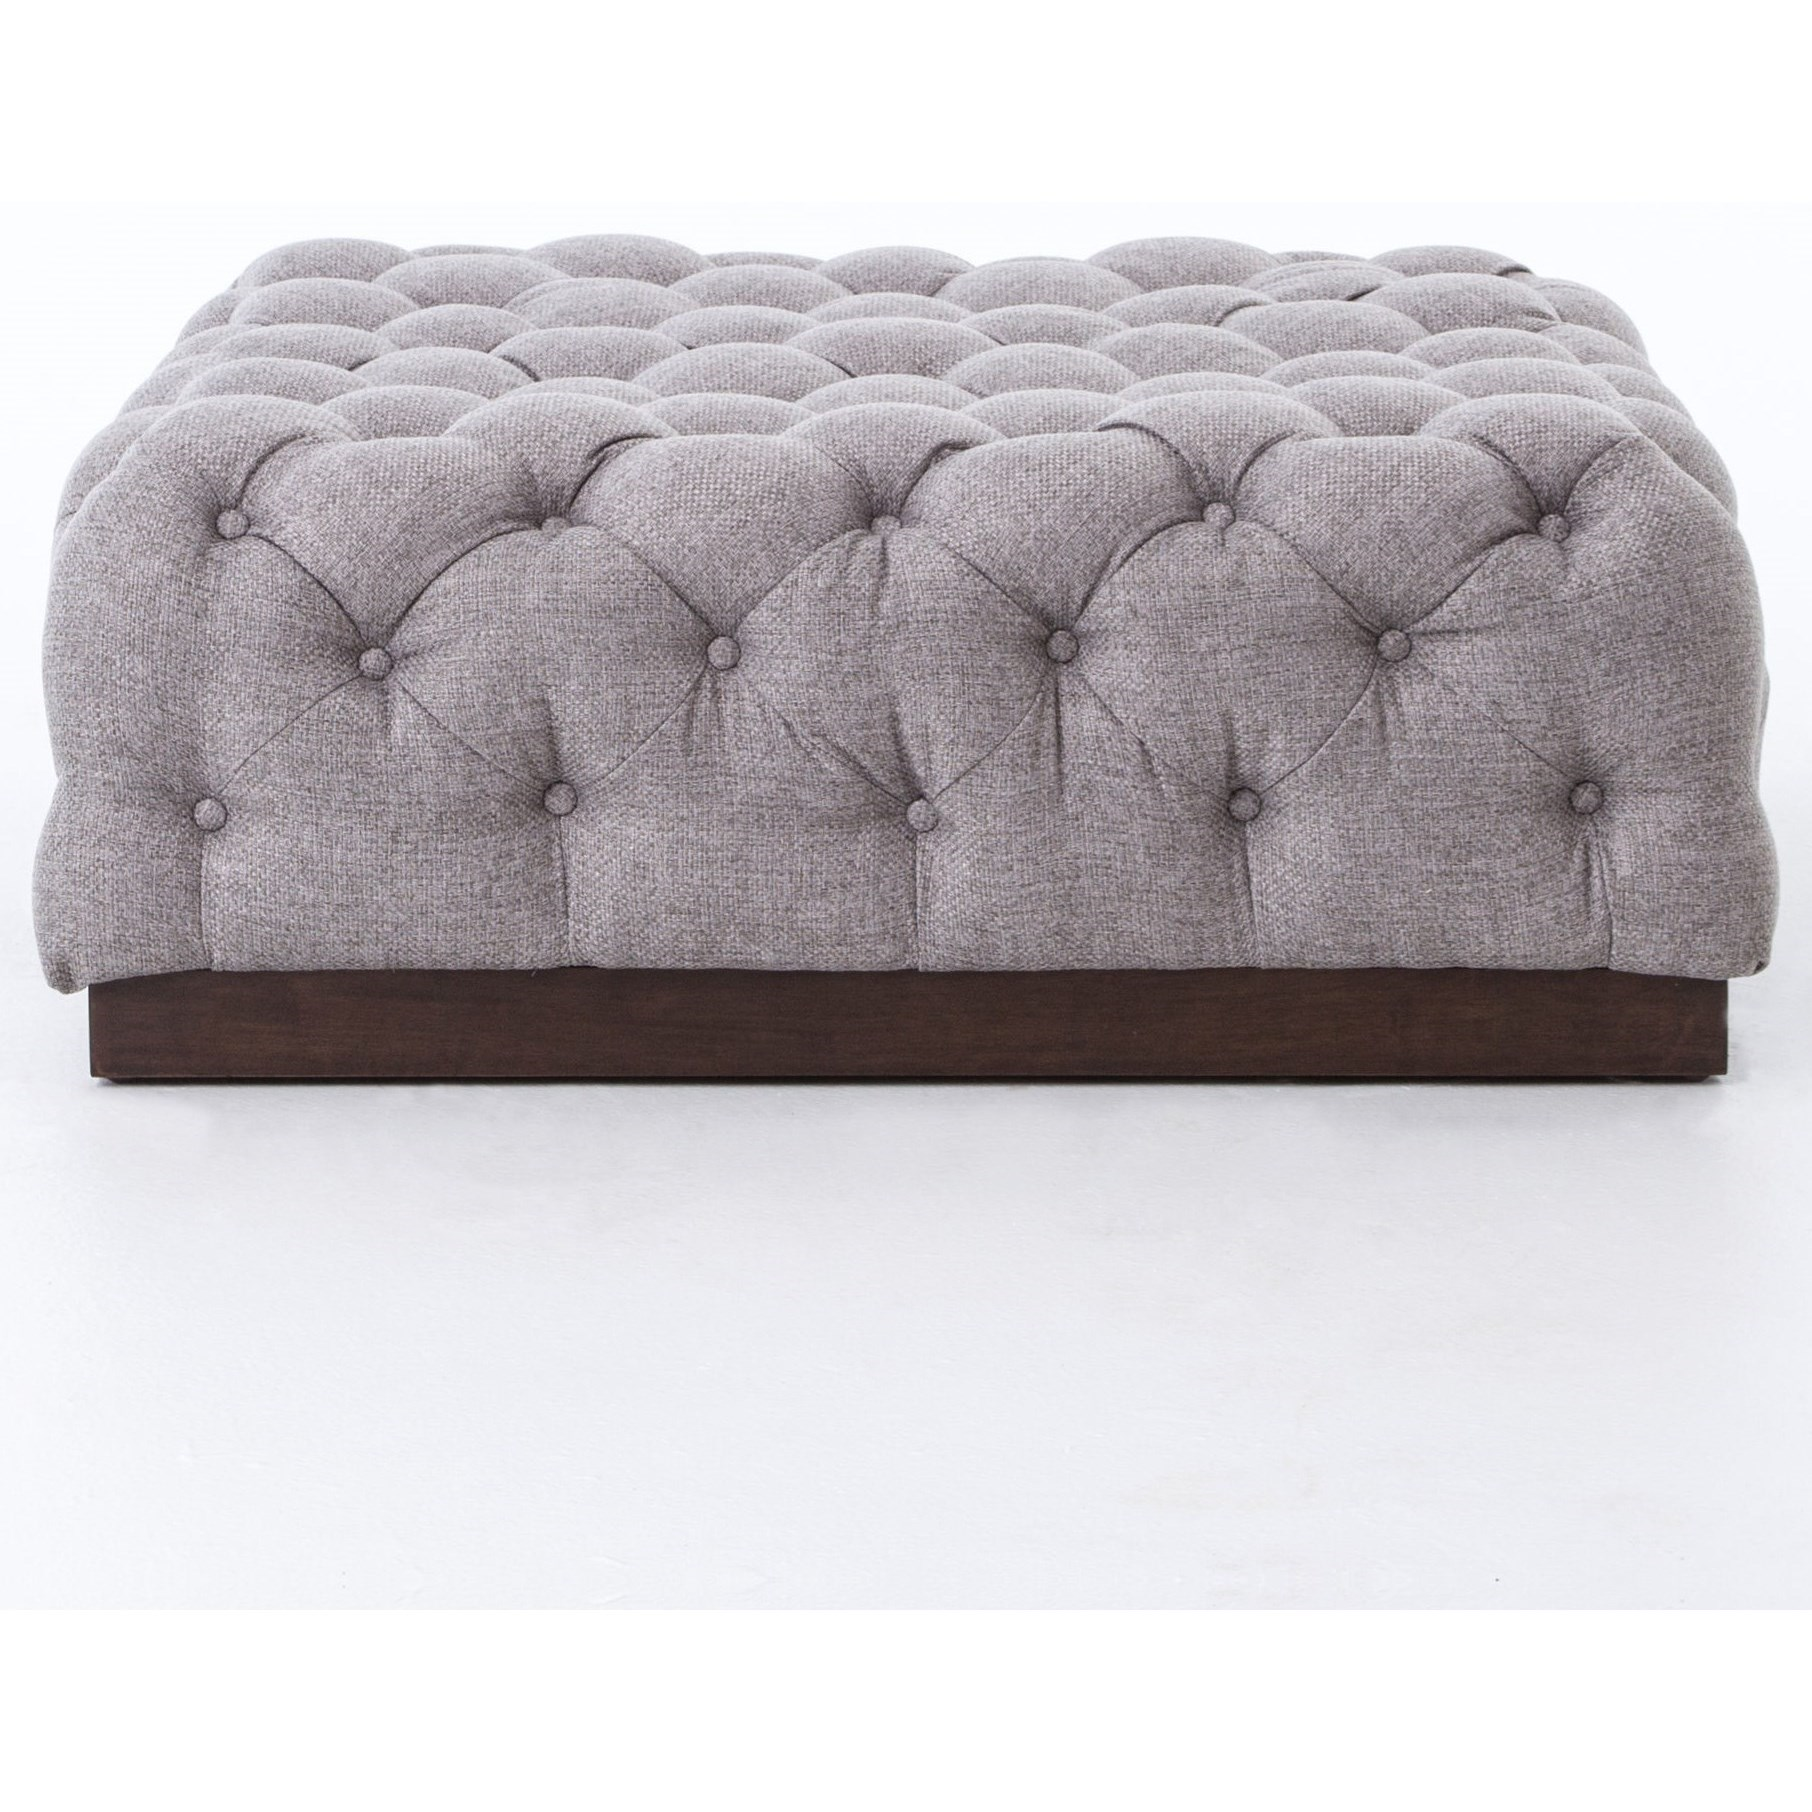 Four Hands Kensington Plateau Cocktail Ottoman - Item Number: CKEN-C1Y-360